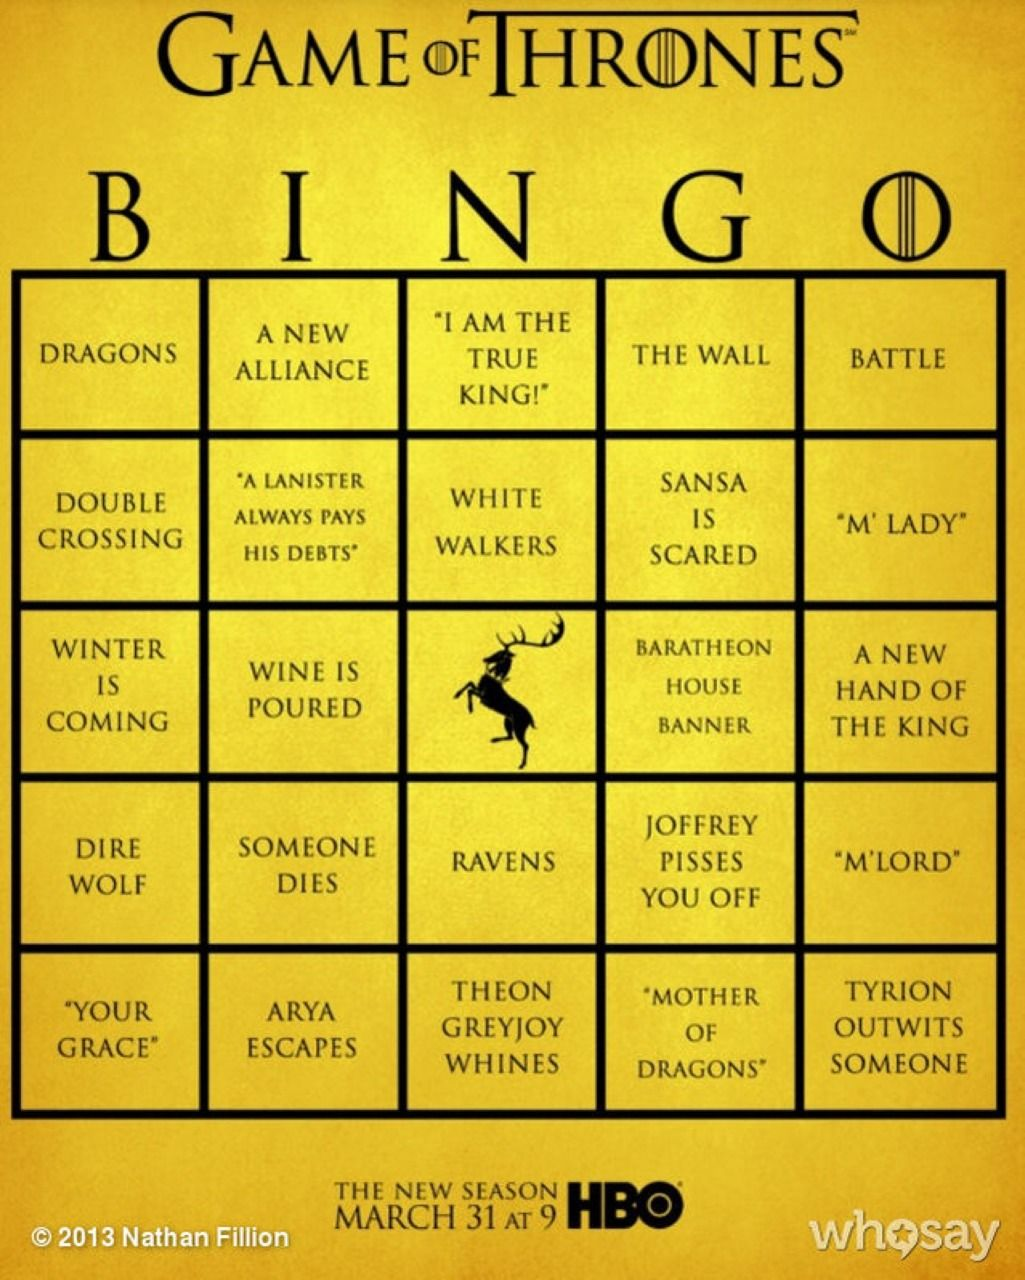 Game of Thrones BINGO. But can we just talk about the